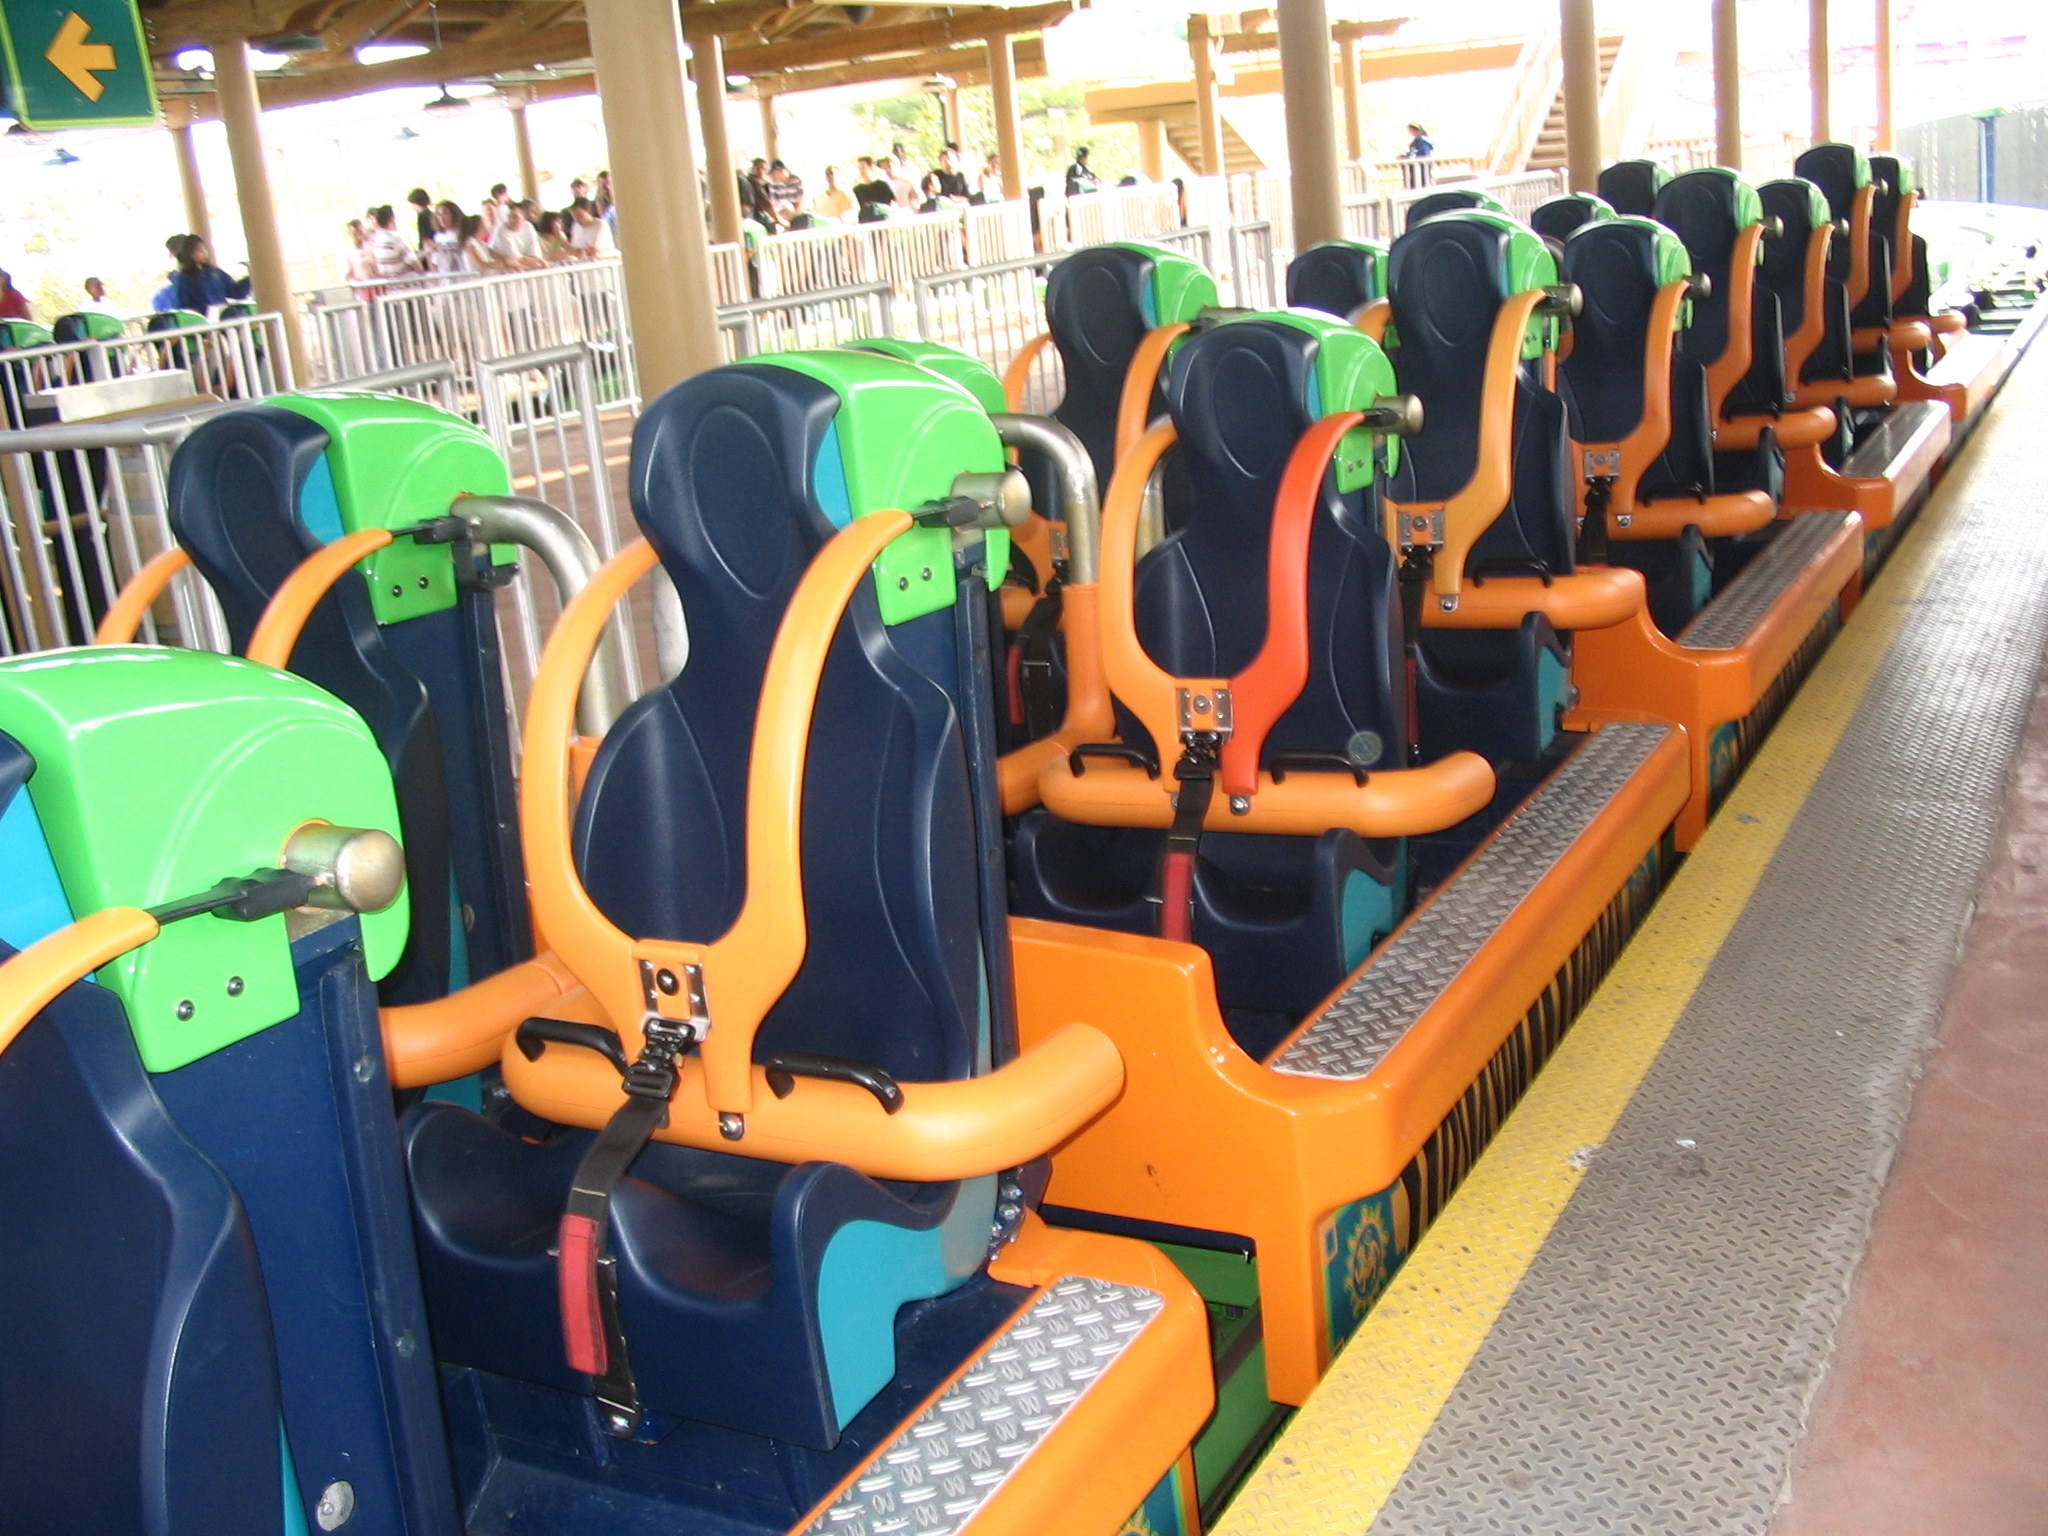 Kingda Ka moreover Kingda Ka Top View likewise Six Flags Roller Coasters Kingda Ka additionally File Bizarro at Six Flags Great Adventure besides Six Flags Great Adventure. on file kingda ka at six flags great adventure new jersey